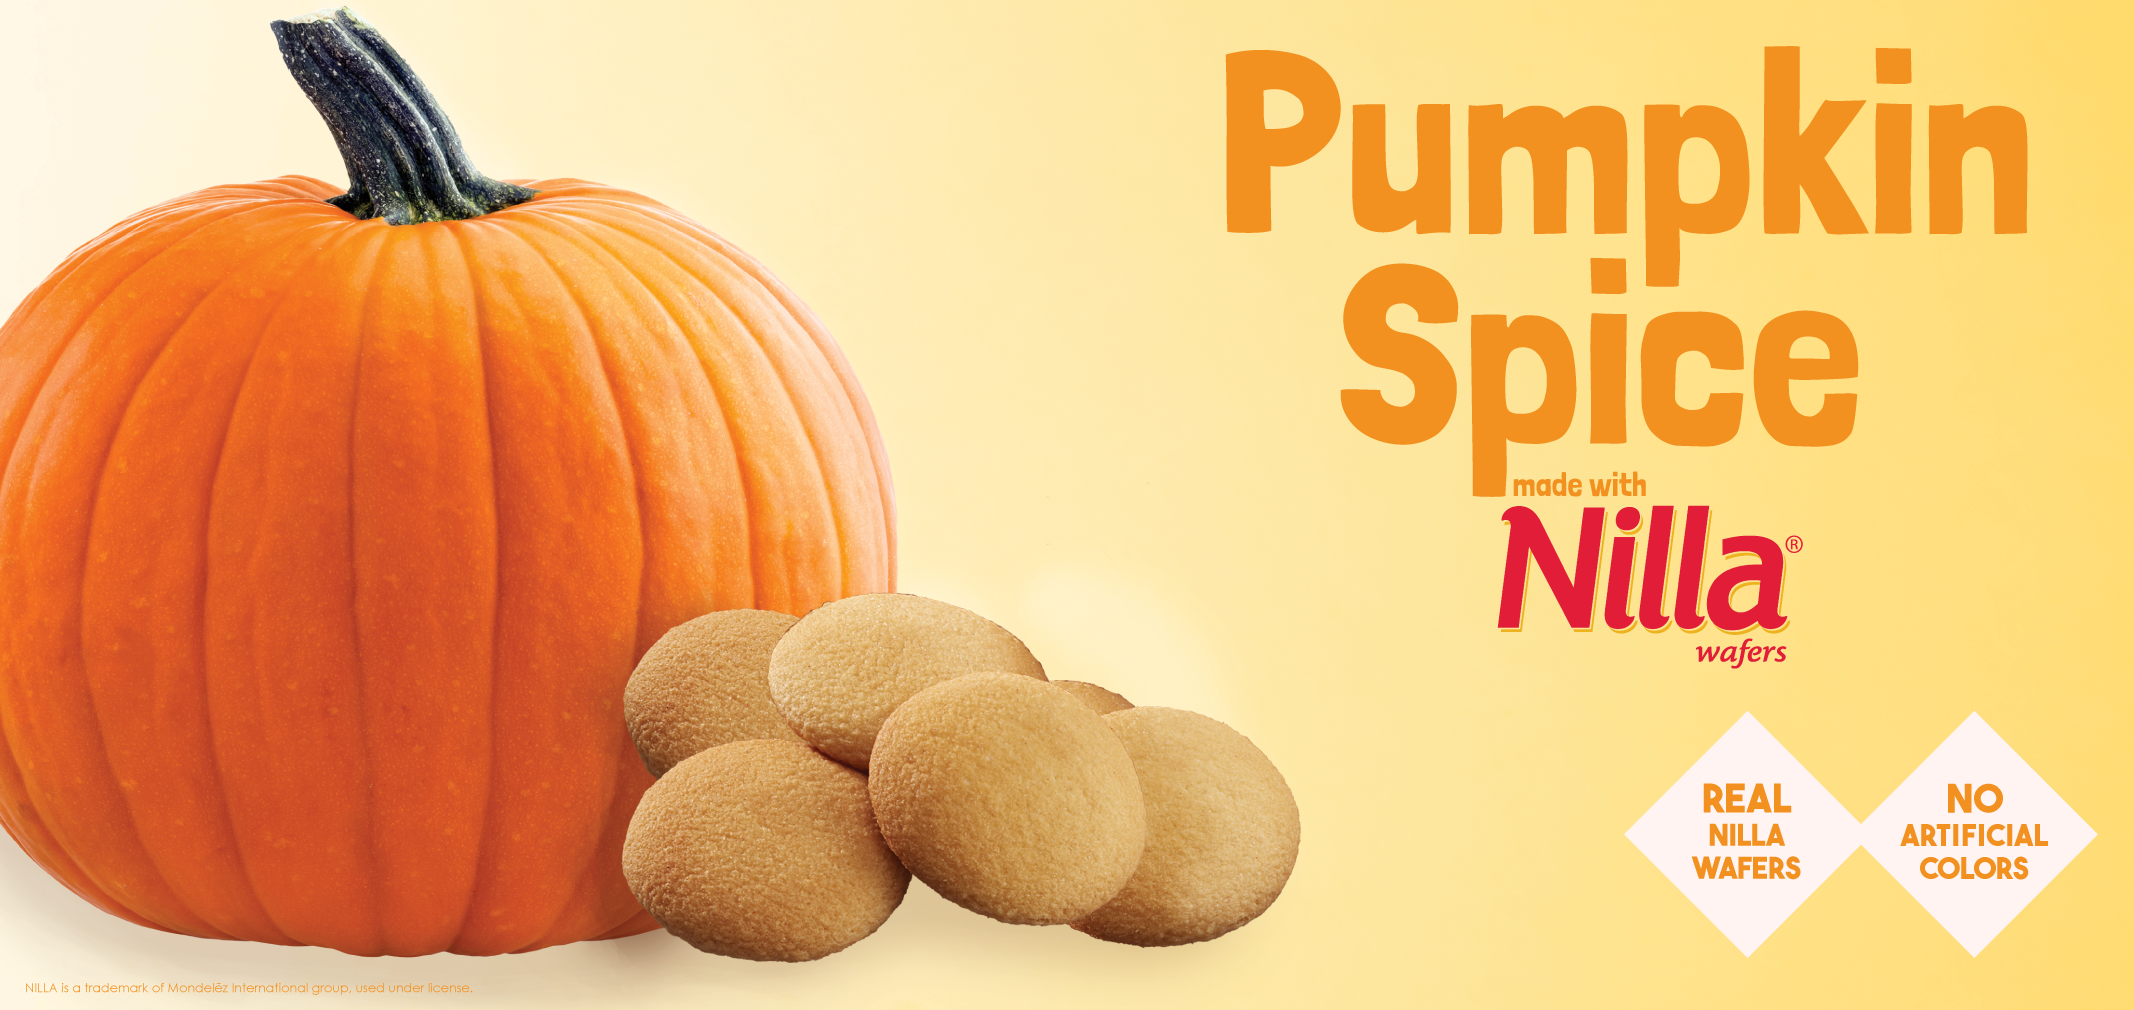 Pumpkin Spice made with Nilla Wafers label image